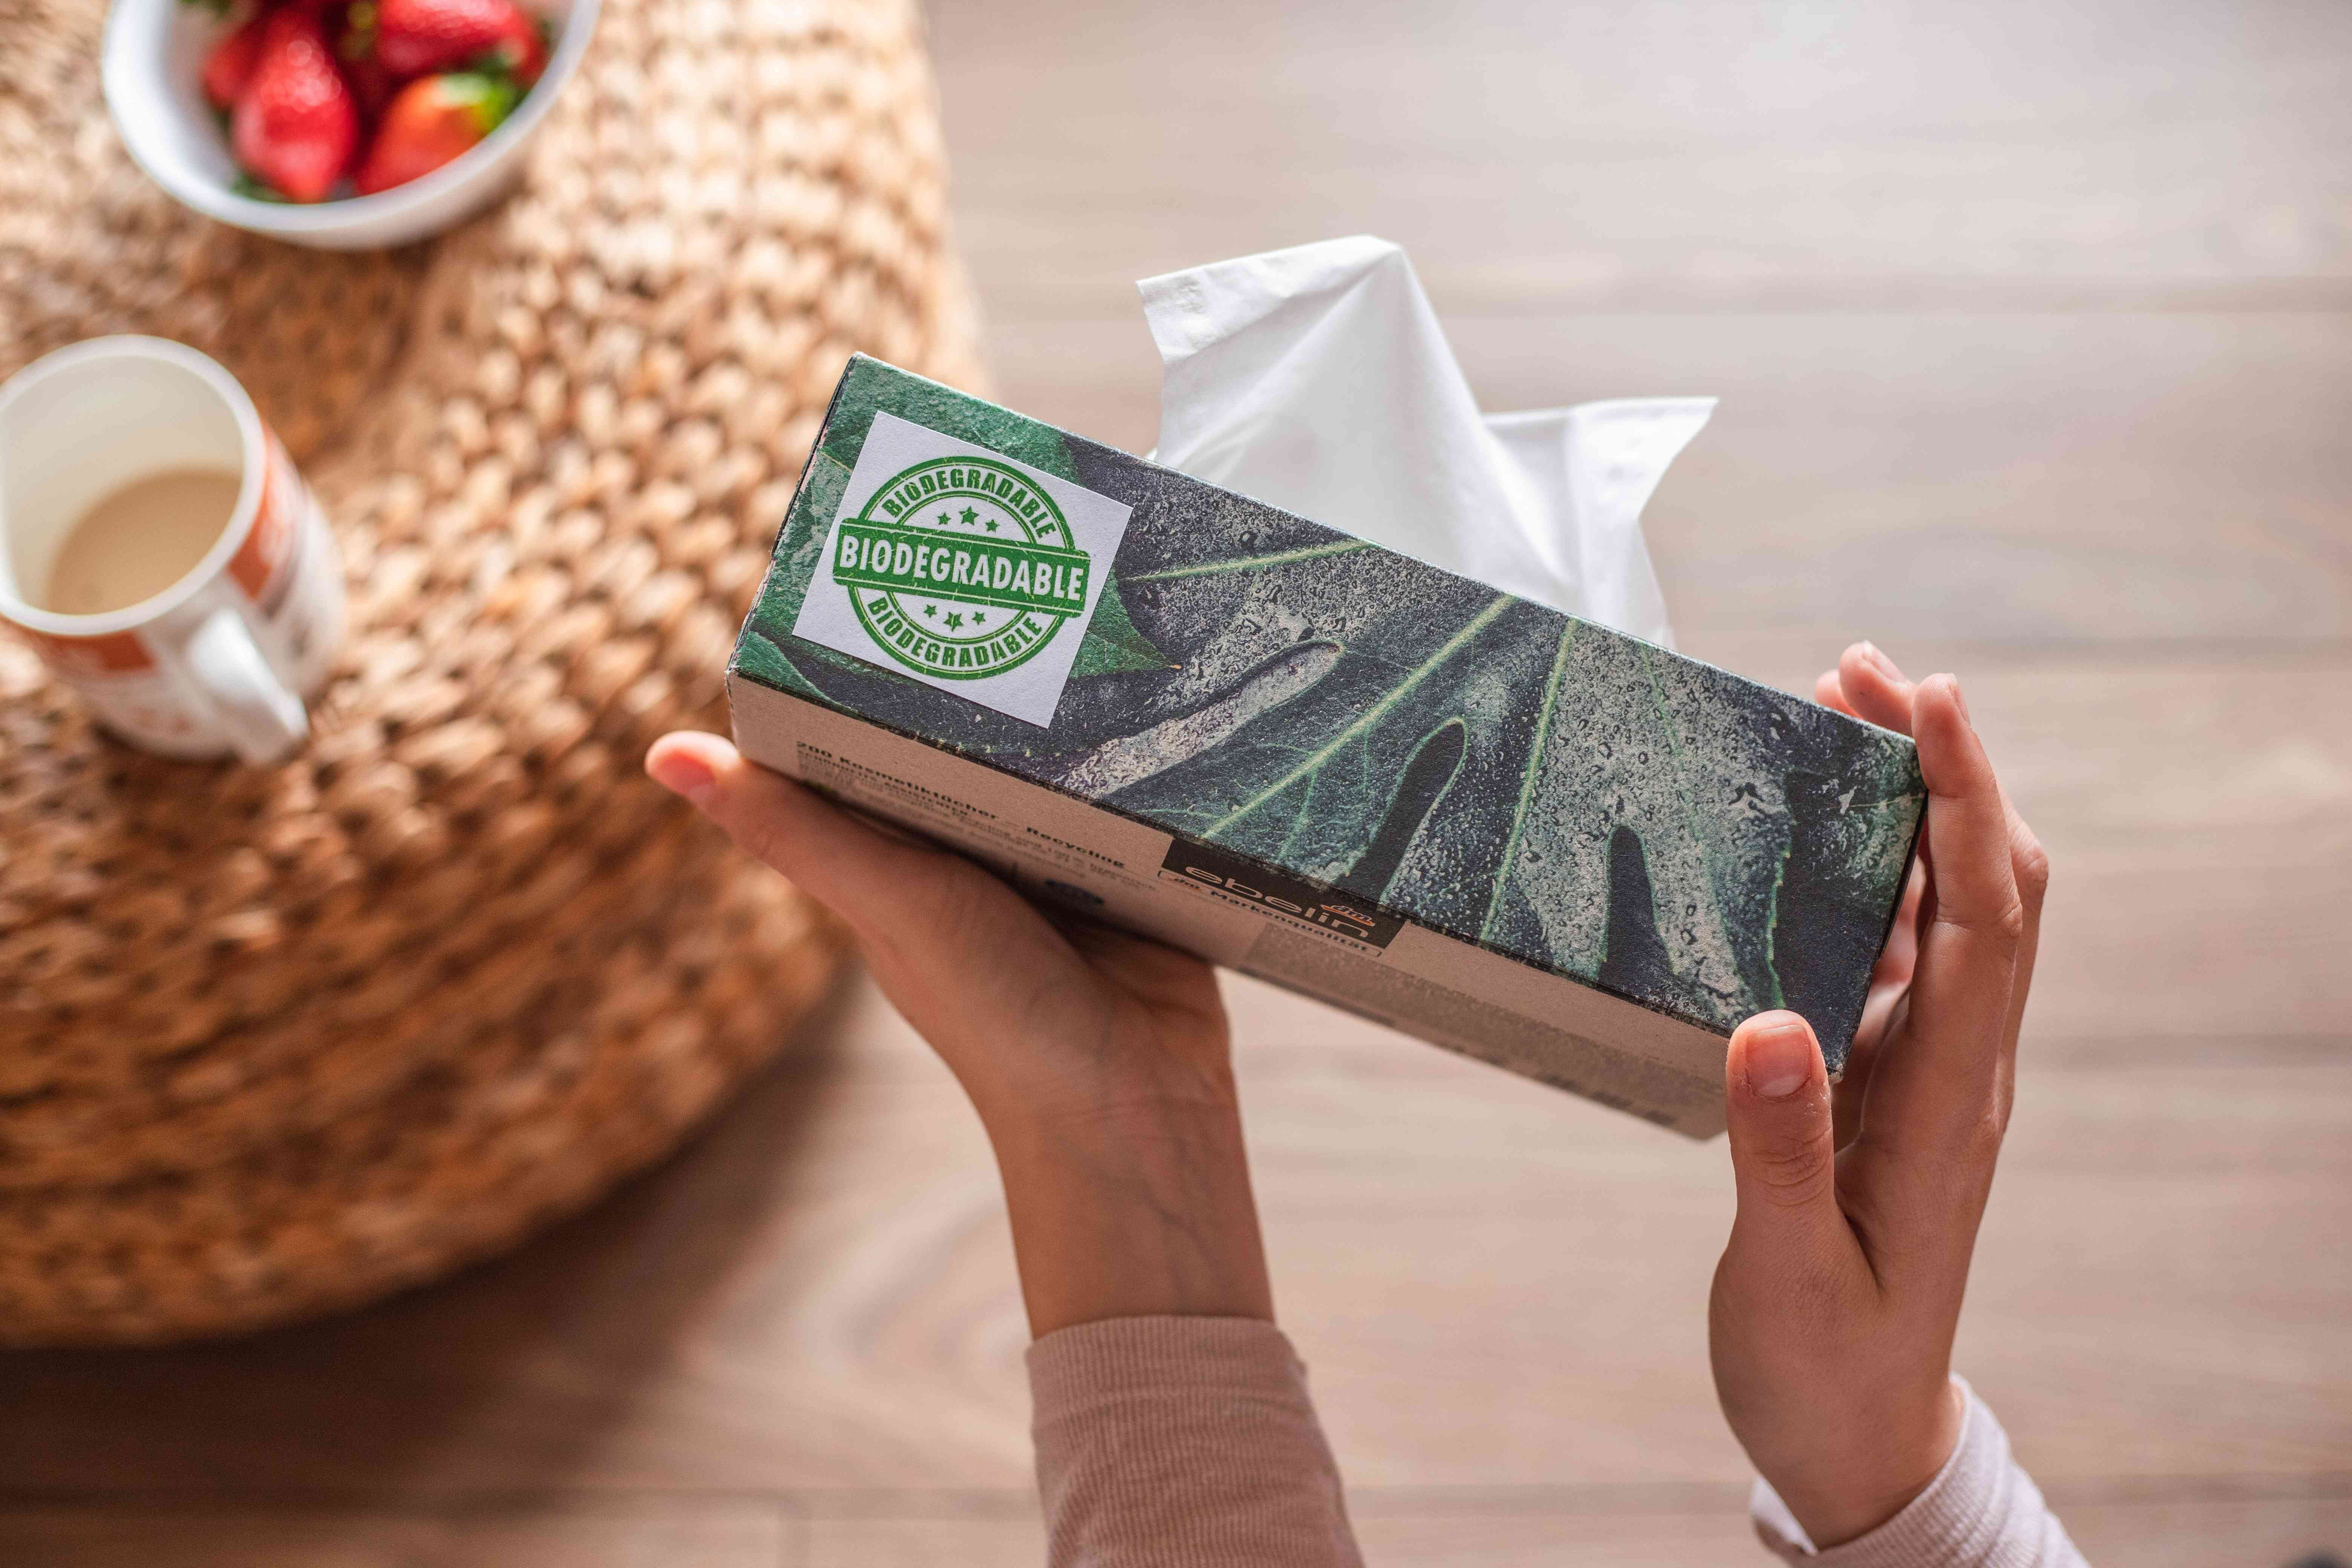 person's hands hold tissue box over table with biodegradable label on the side